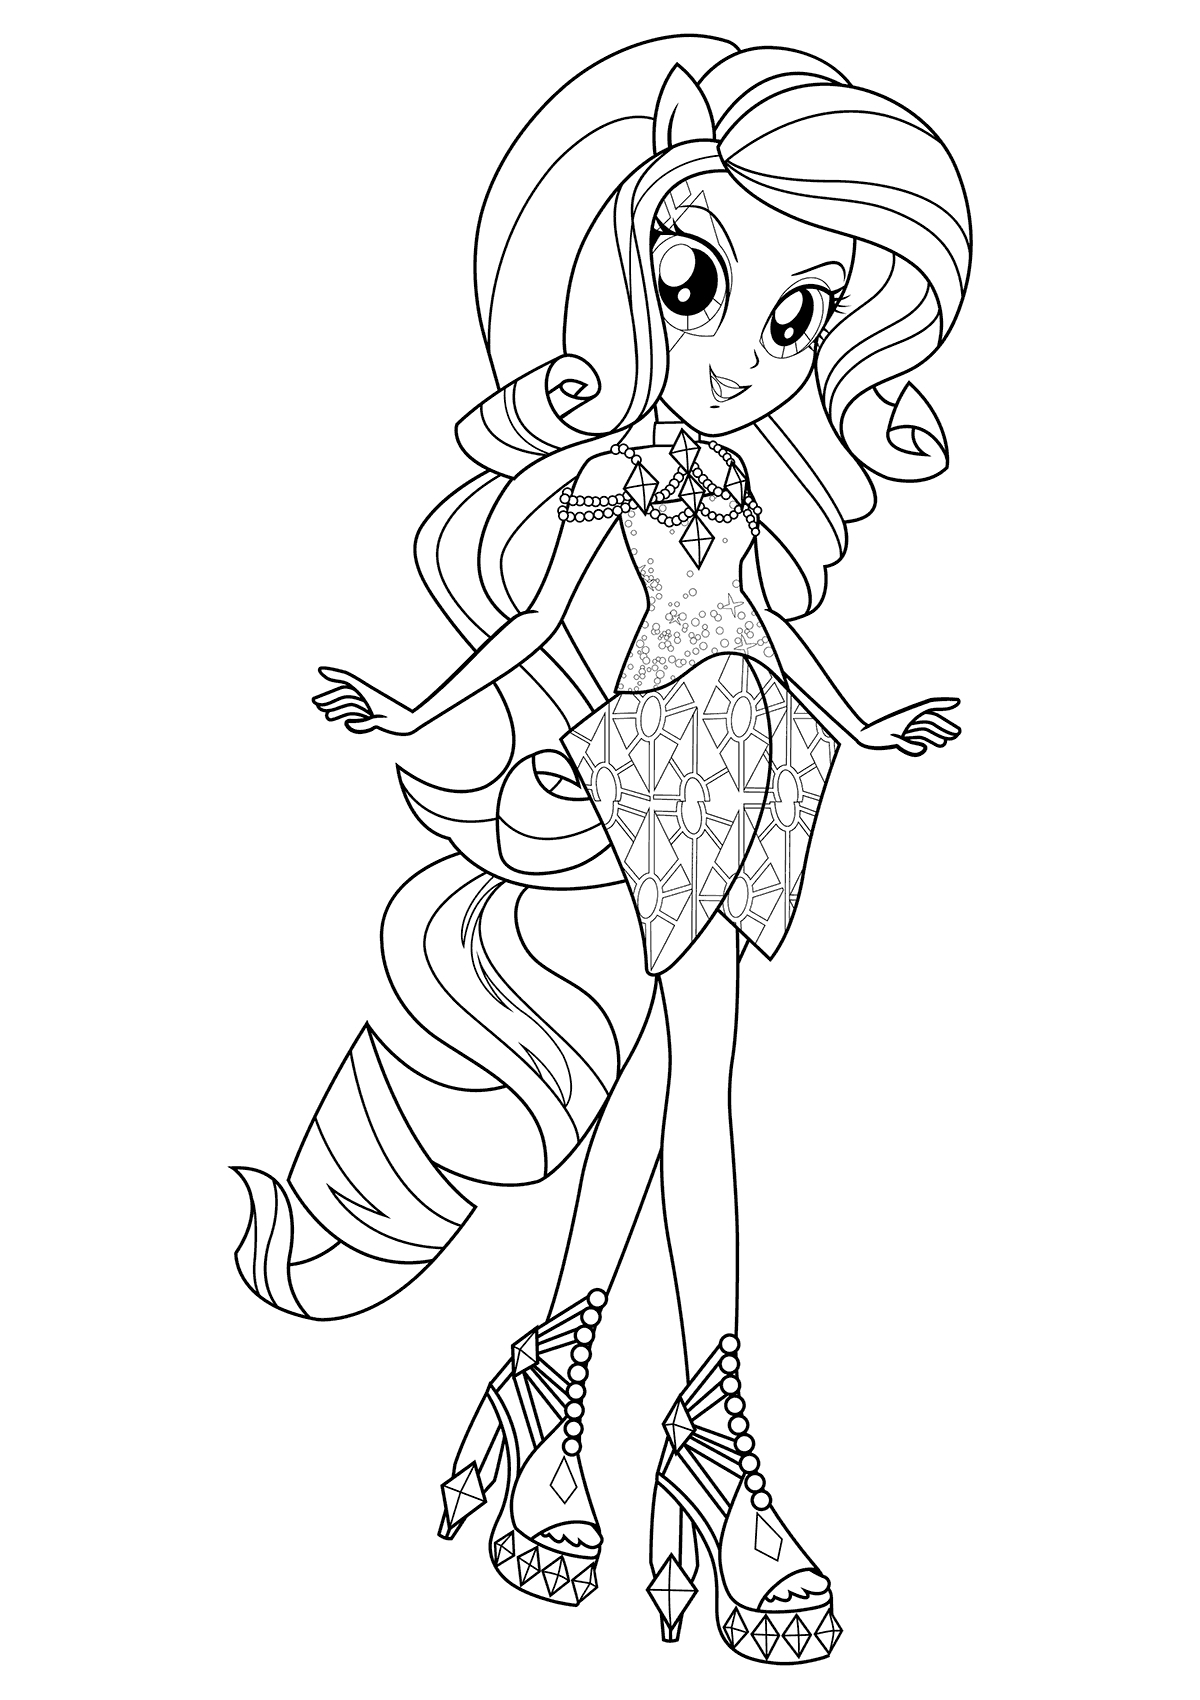 Rarity Coloring Pages My Little Pony Coloring Pages Free Throughout Rarity Monesmapyrene